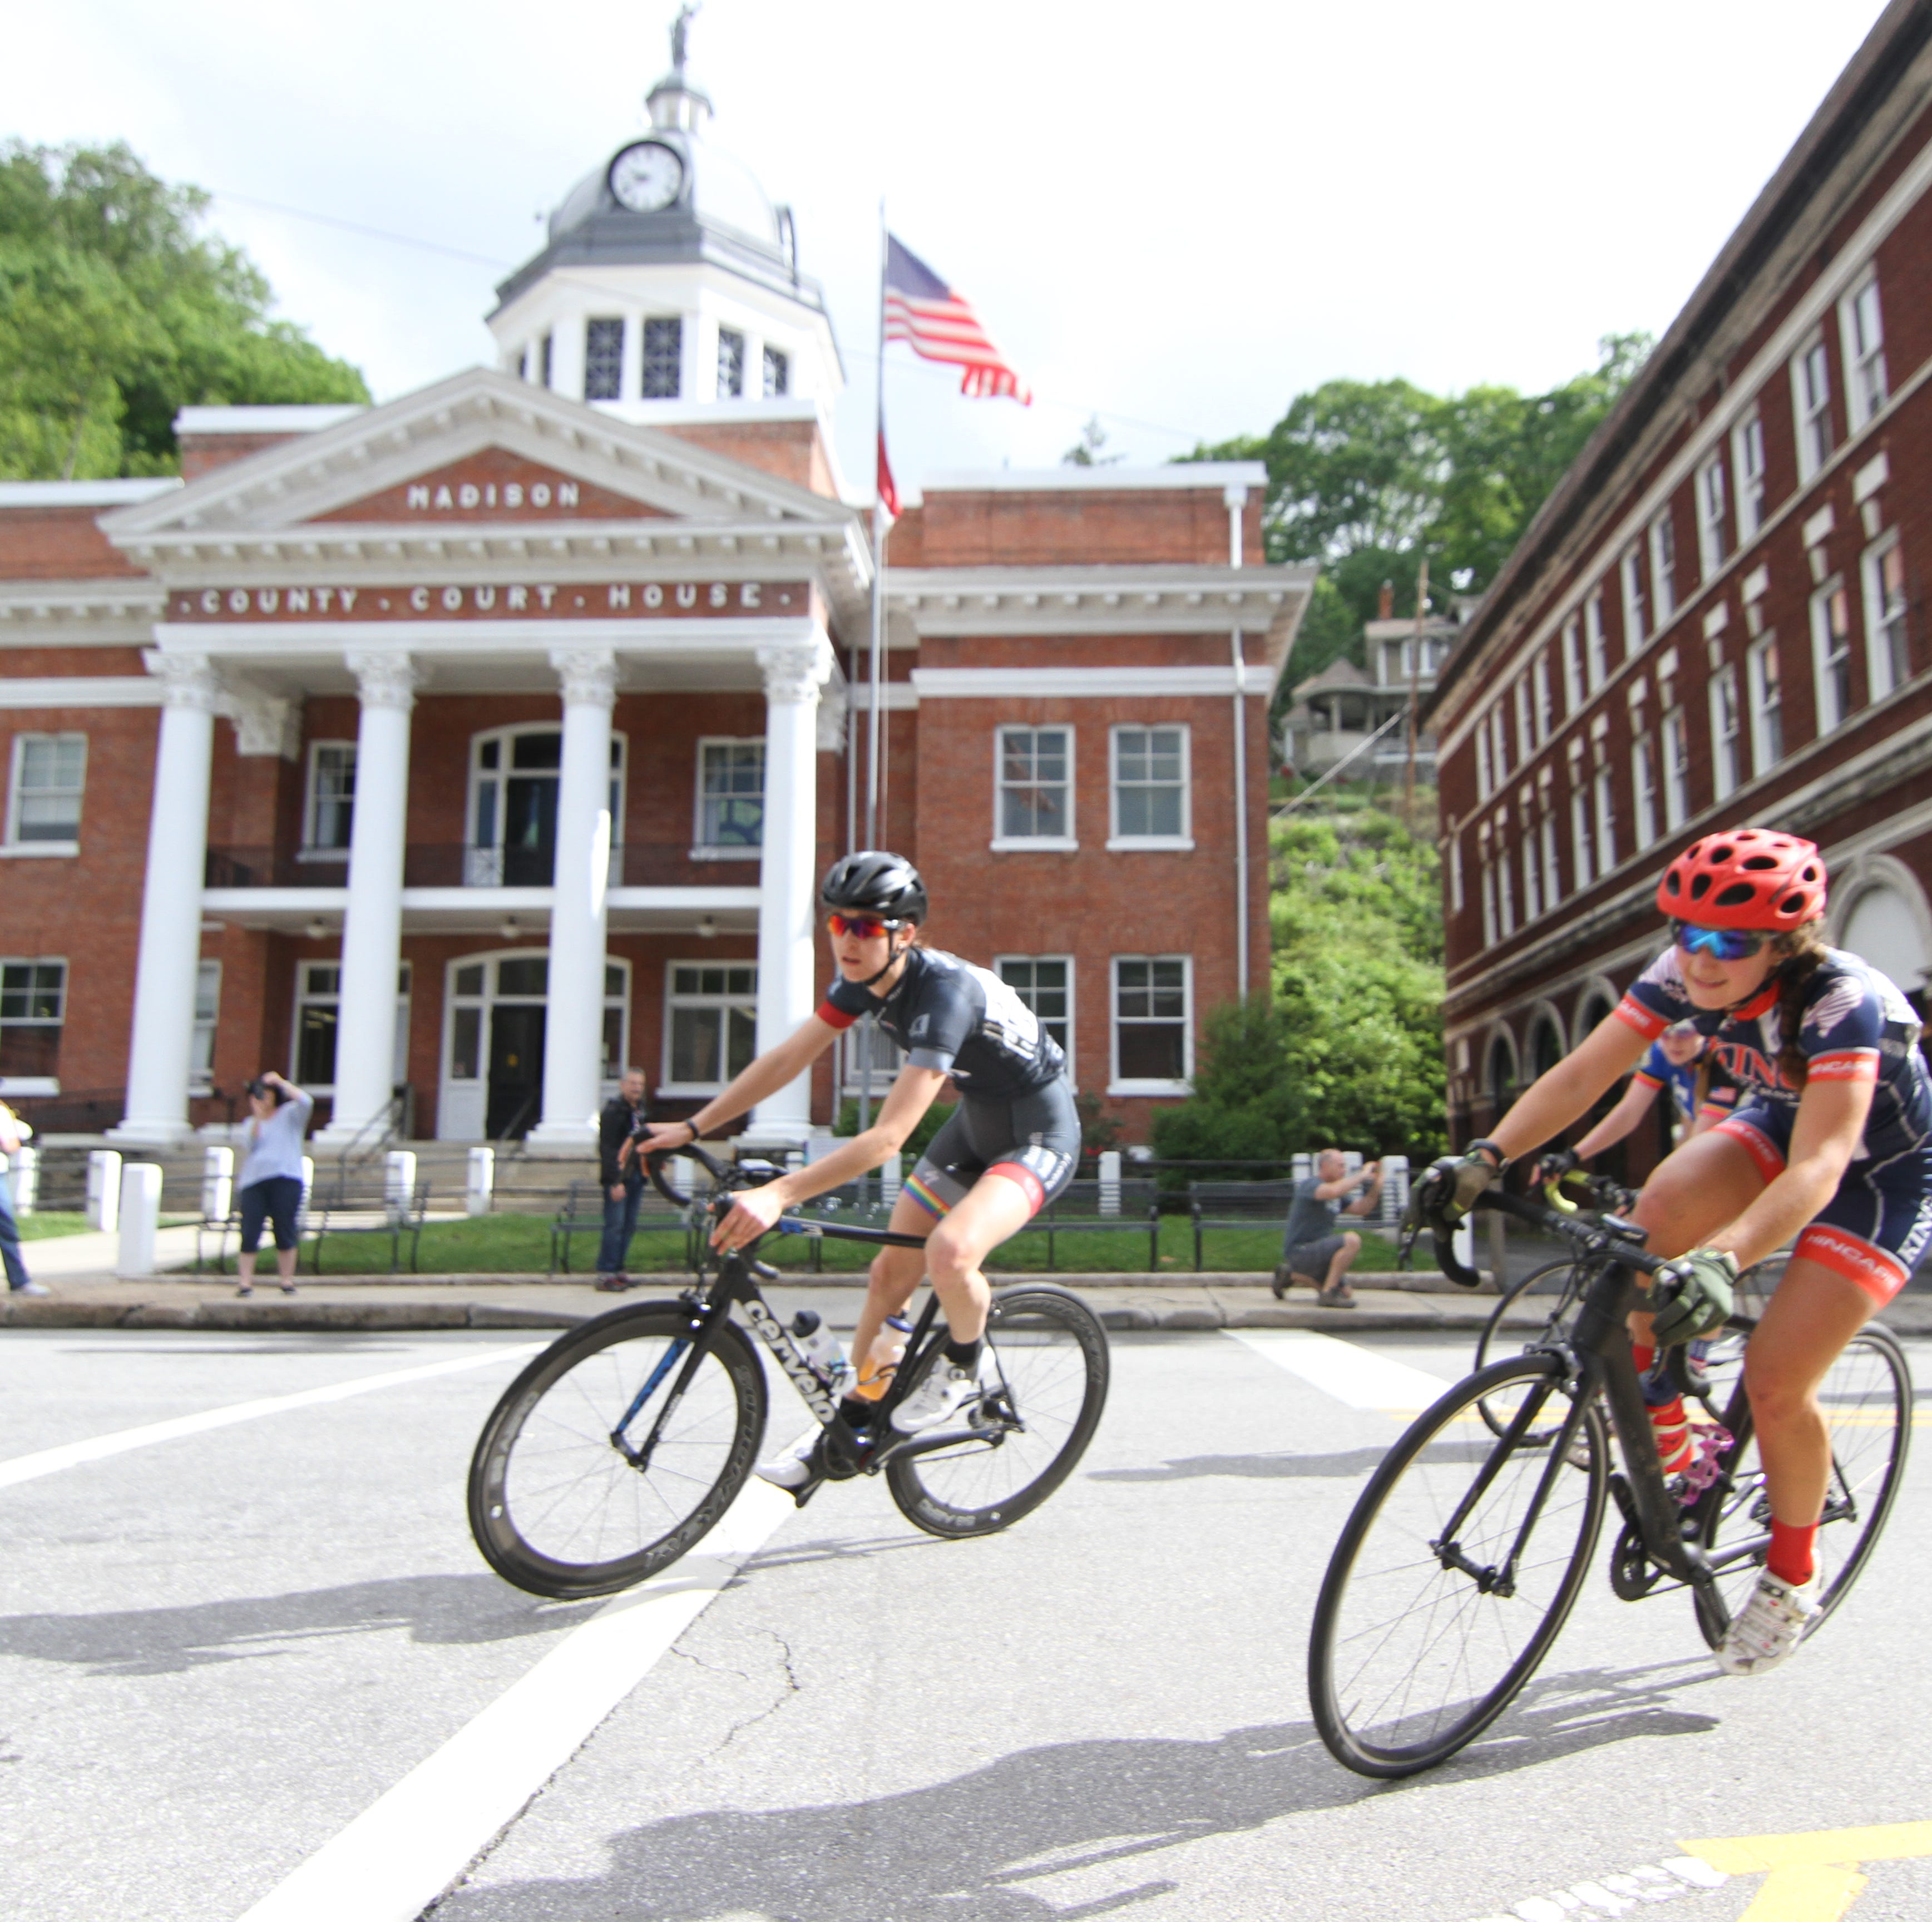 Plans take shape to host annual mountain cycling event in Marshall